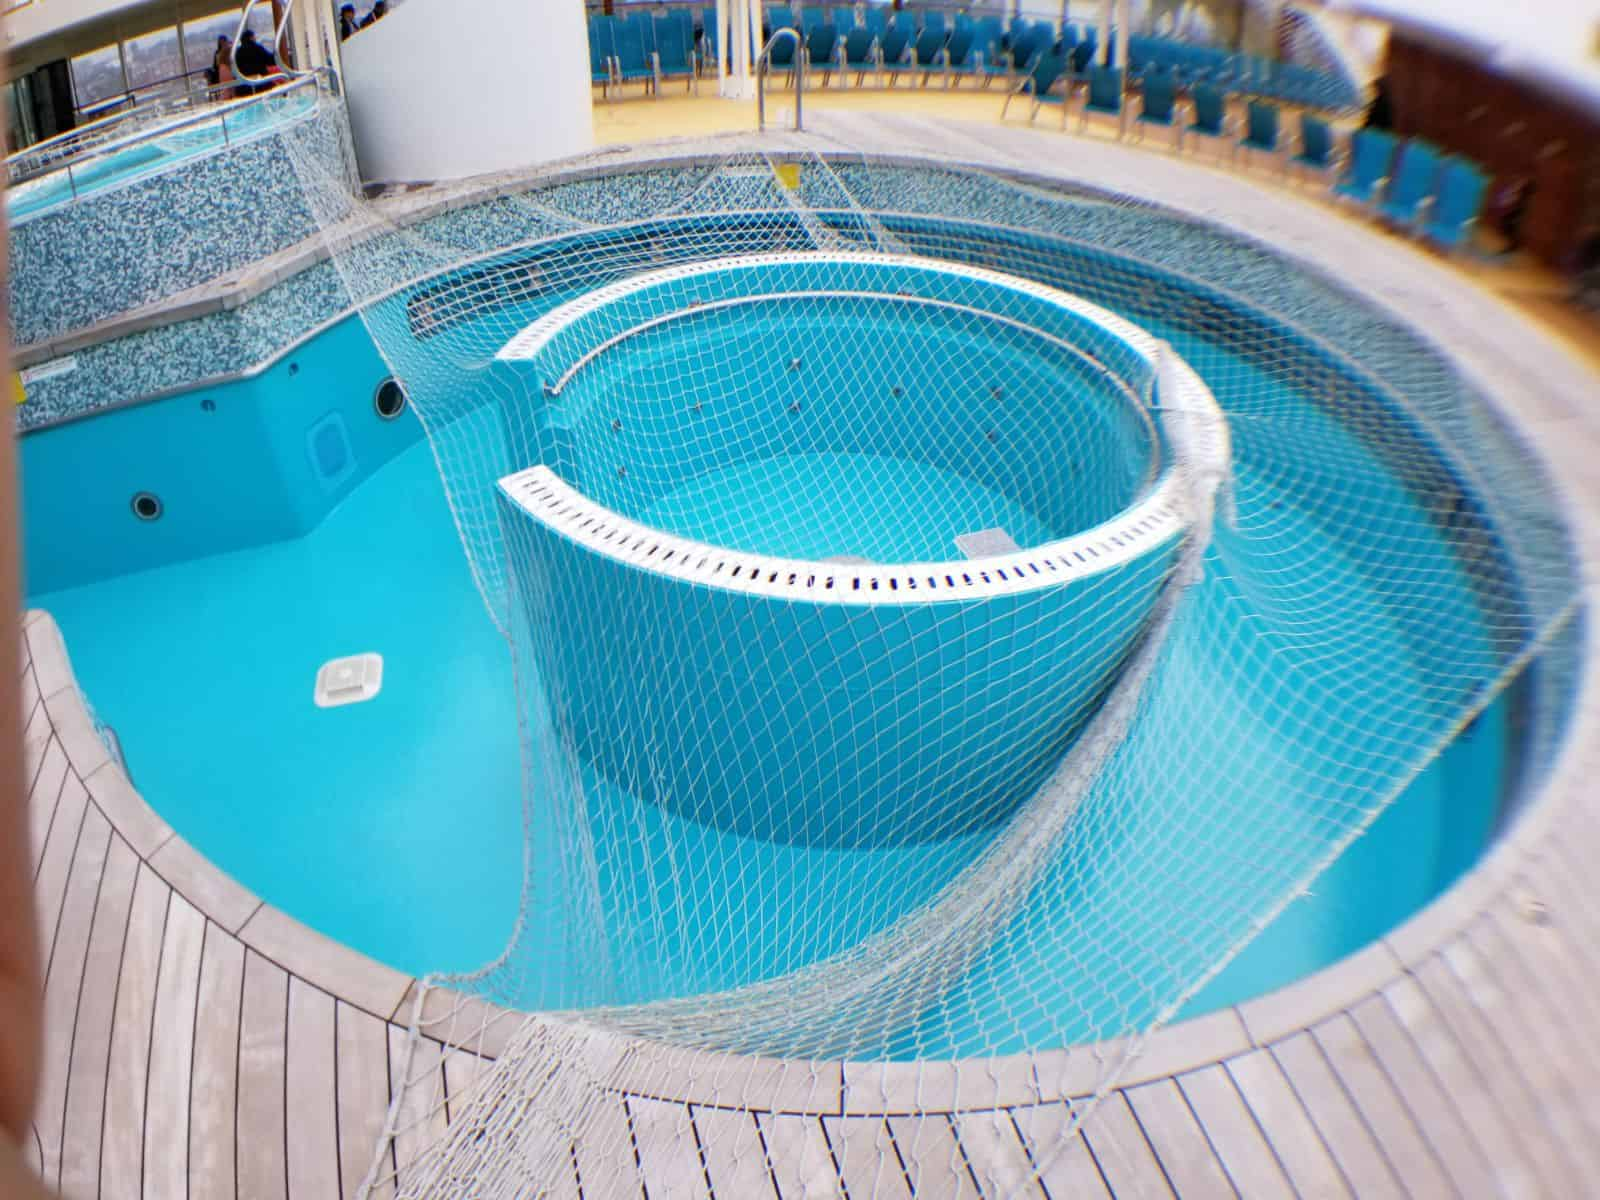 ship swimming pool painted in blue with protective netting